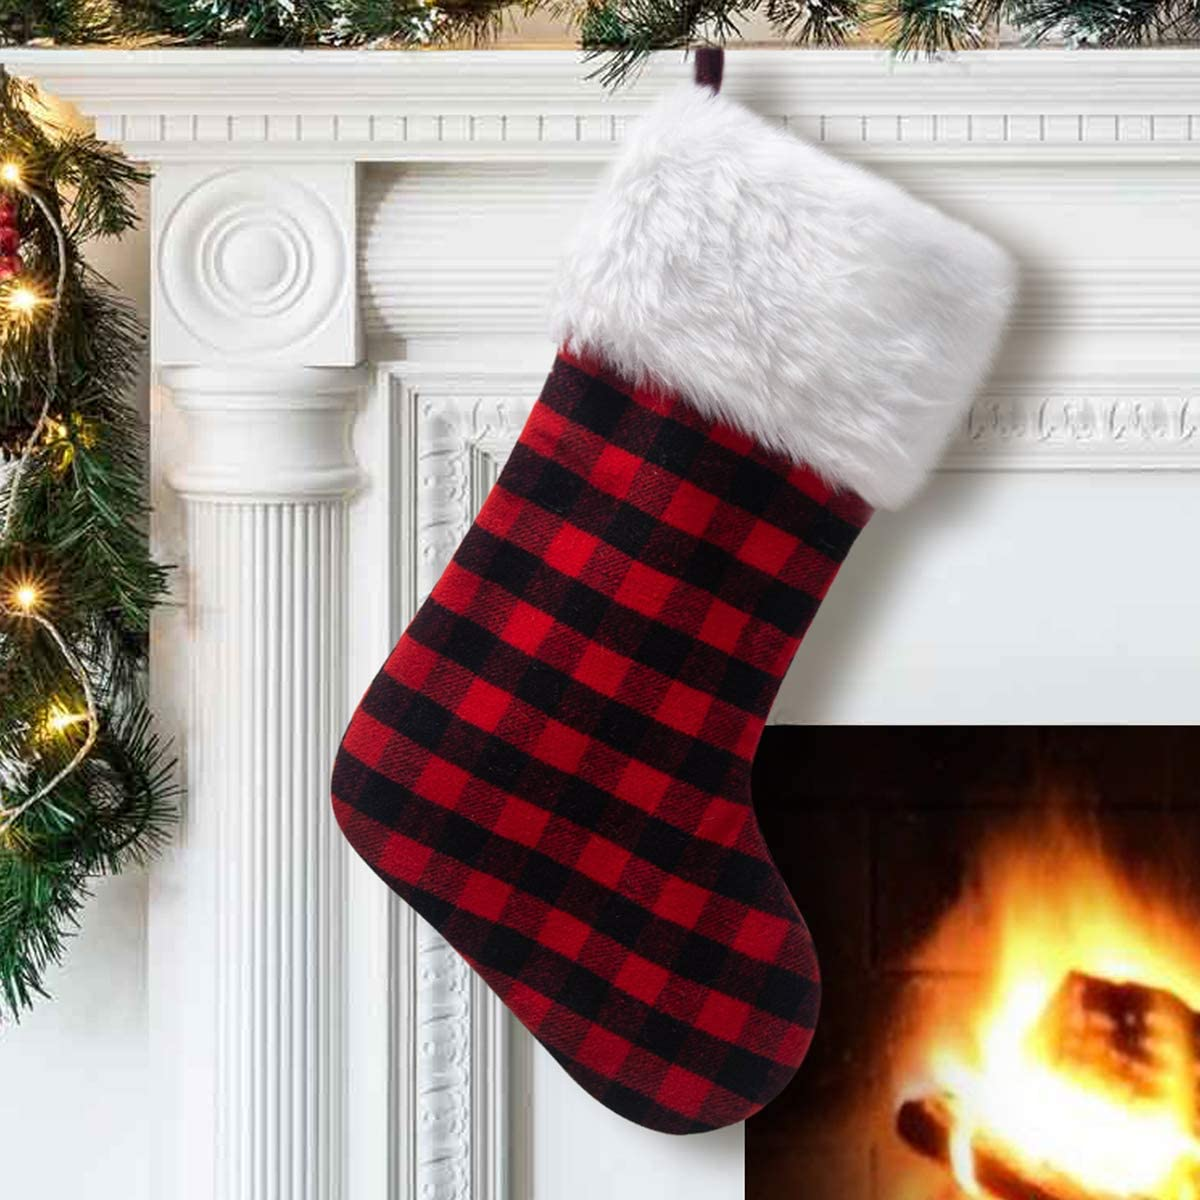 S-DEAL OFFicial site discount Red and Black Plaid Gift Christmas Stocking Double Layers